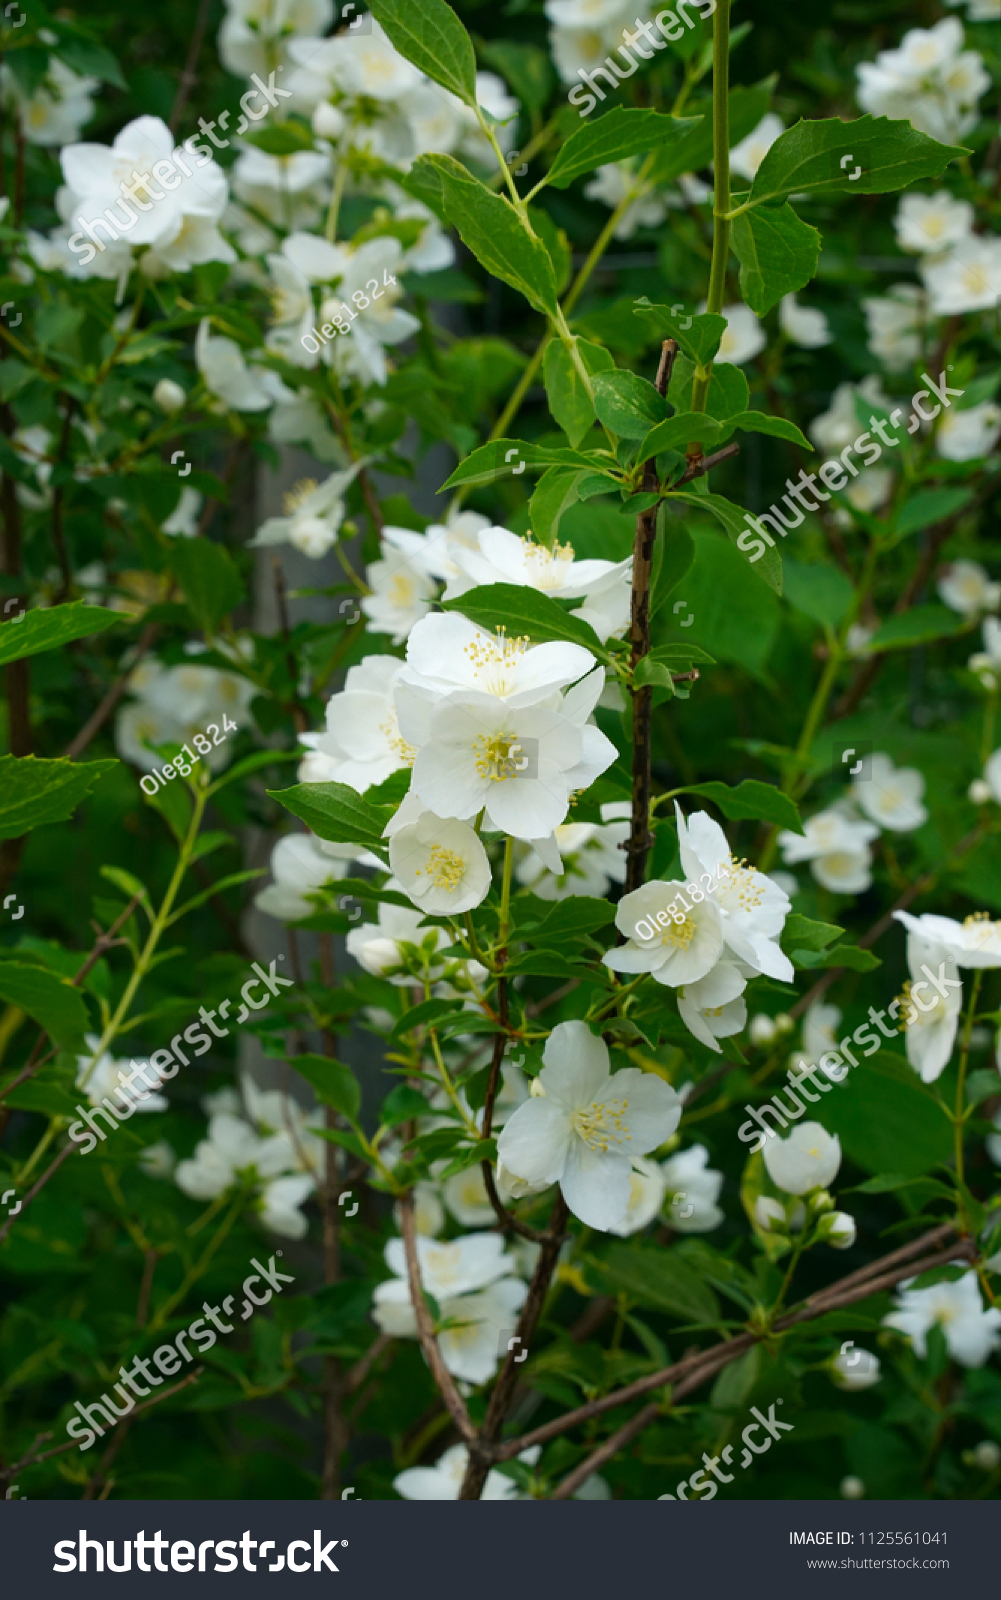 White Bell Flowers Campanula Persicifolia Background Stock Photo